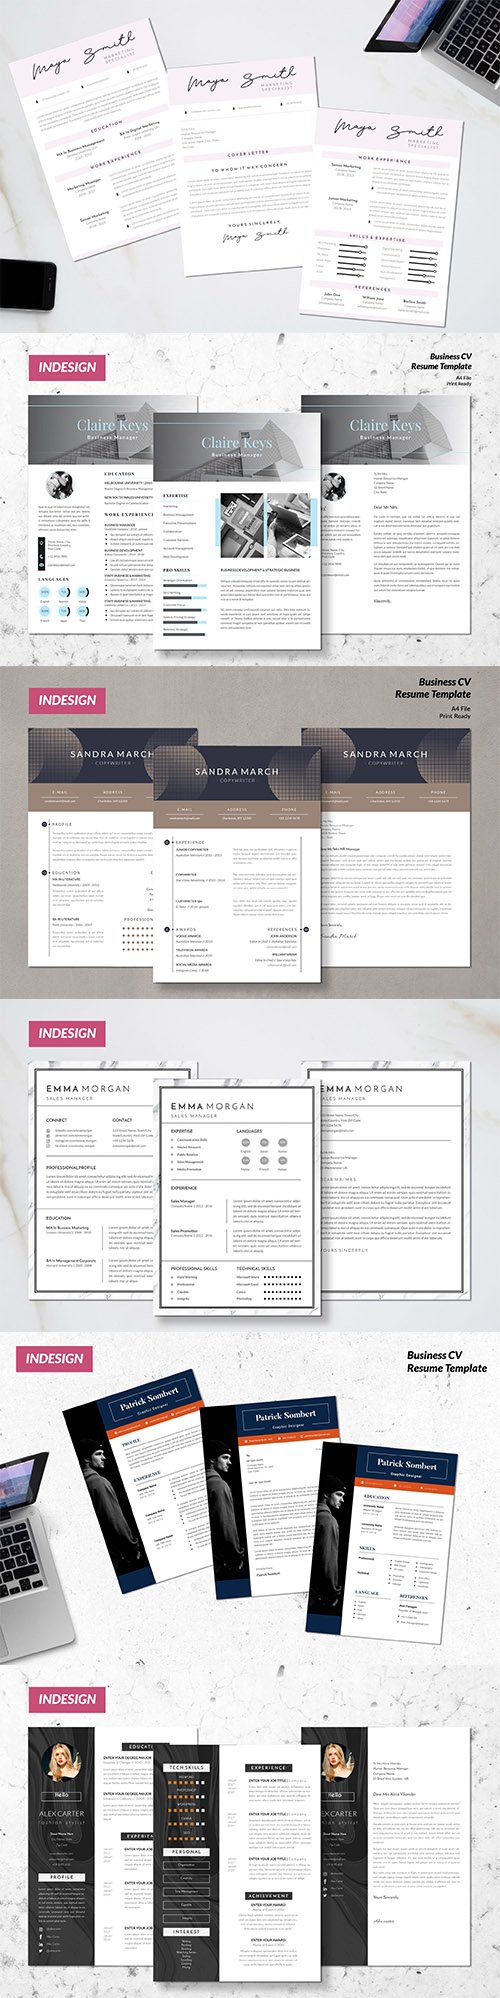 Creative and Marketing CV Resume Indesign Template Set